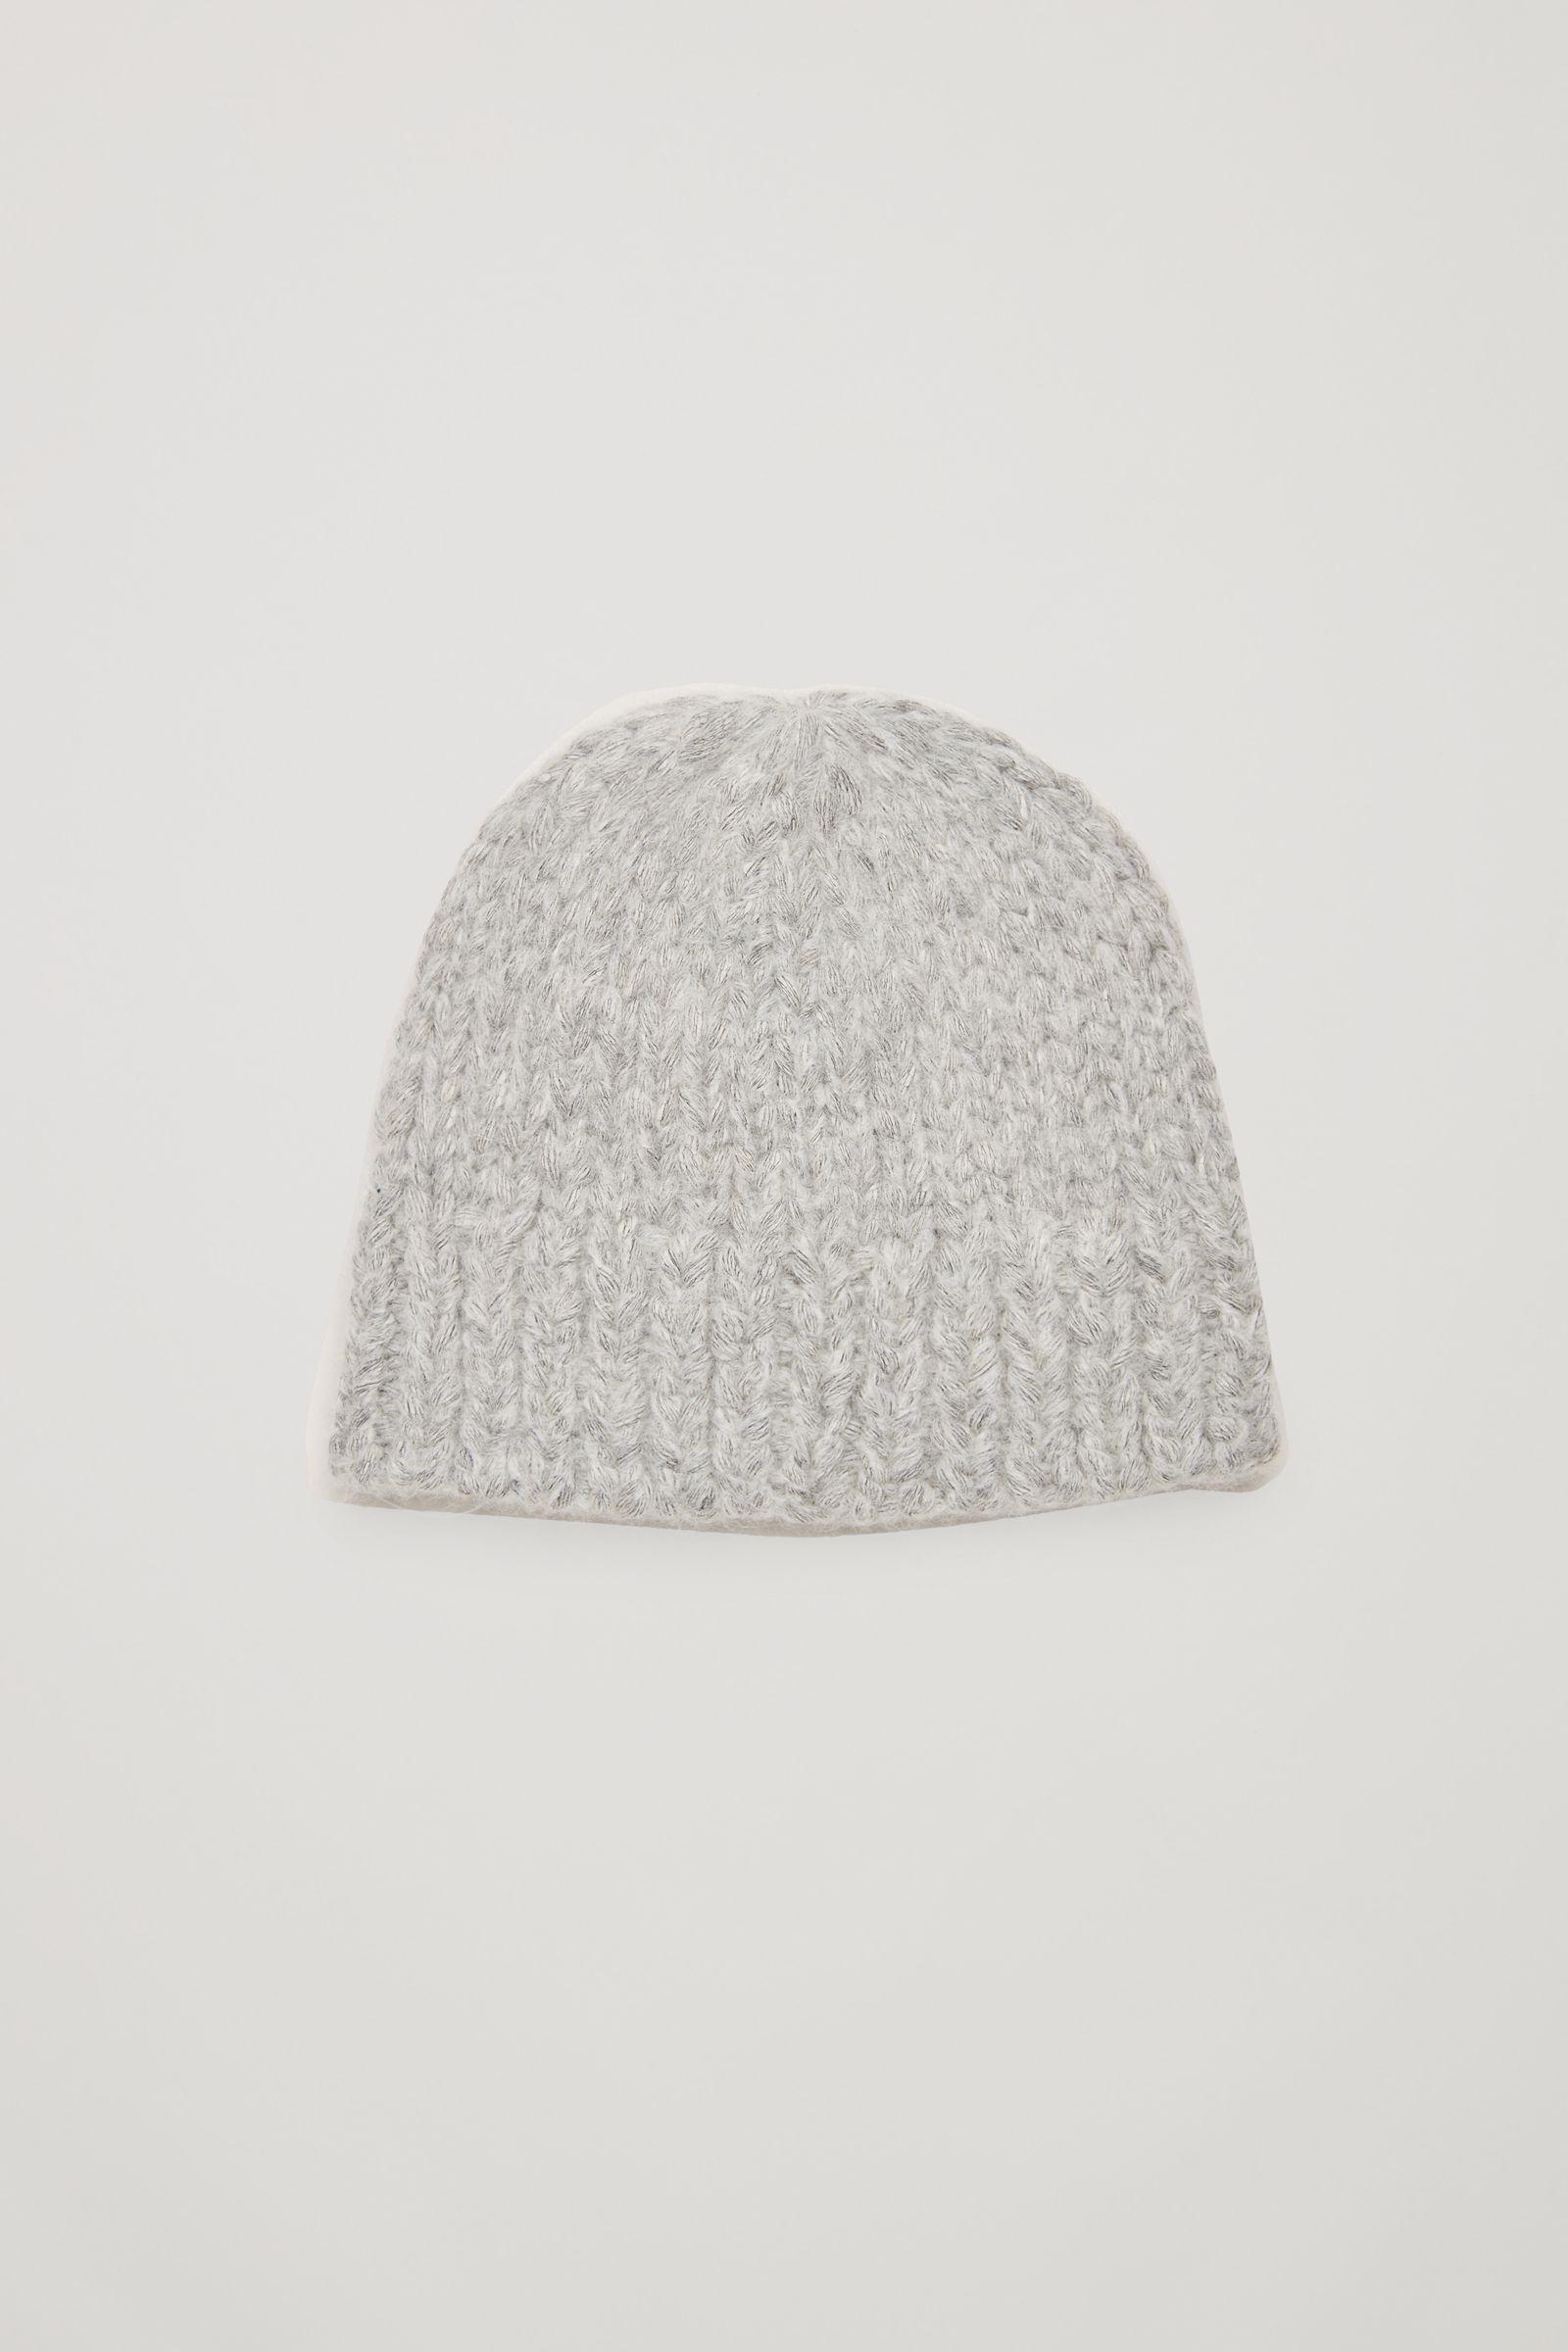 Lyst - COS Alpaca-blend Beanie Hat in Gray 145edf909009